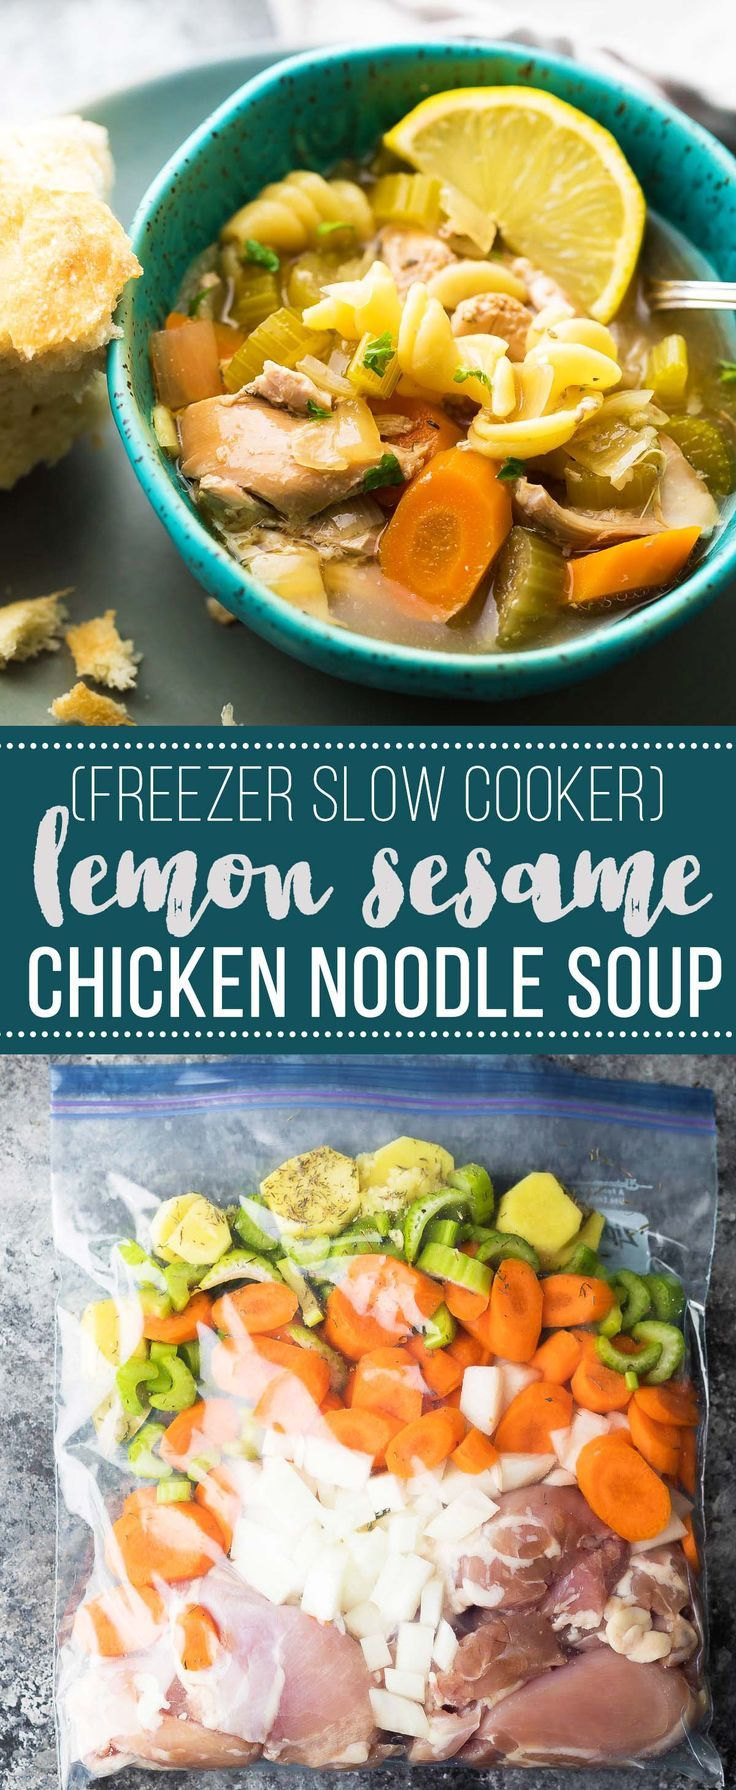 735 best {SLOW COOKER} images on Pinterest | Healthy meals, Recipes ...